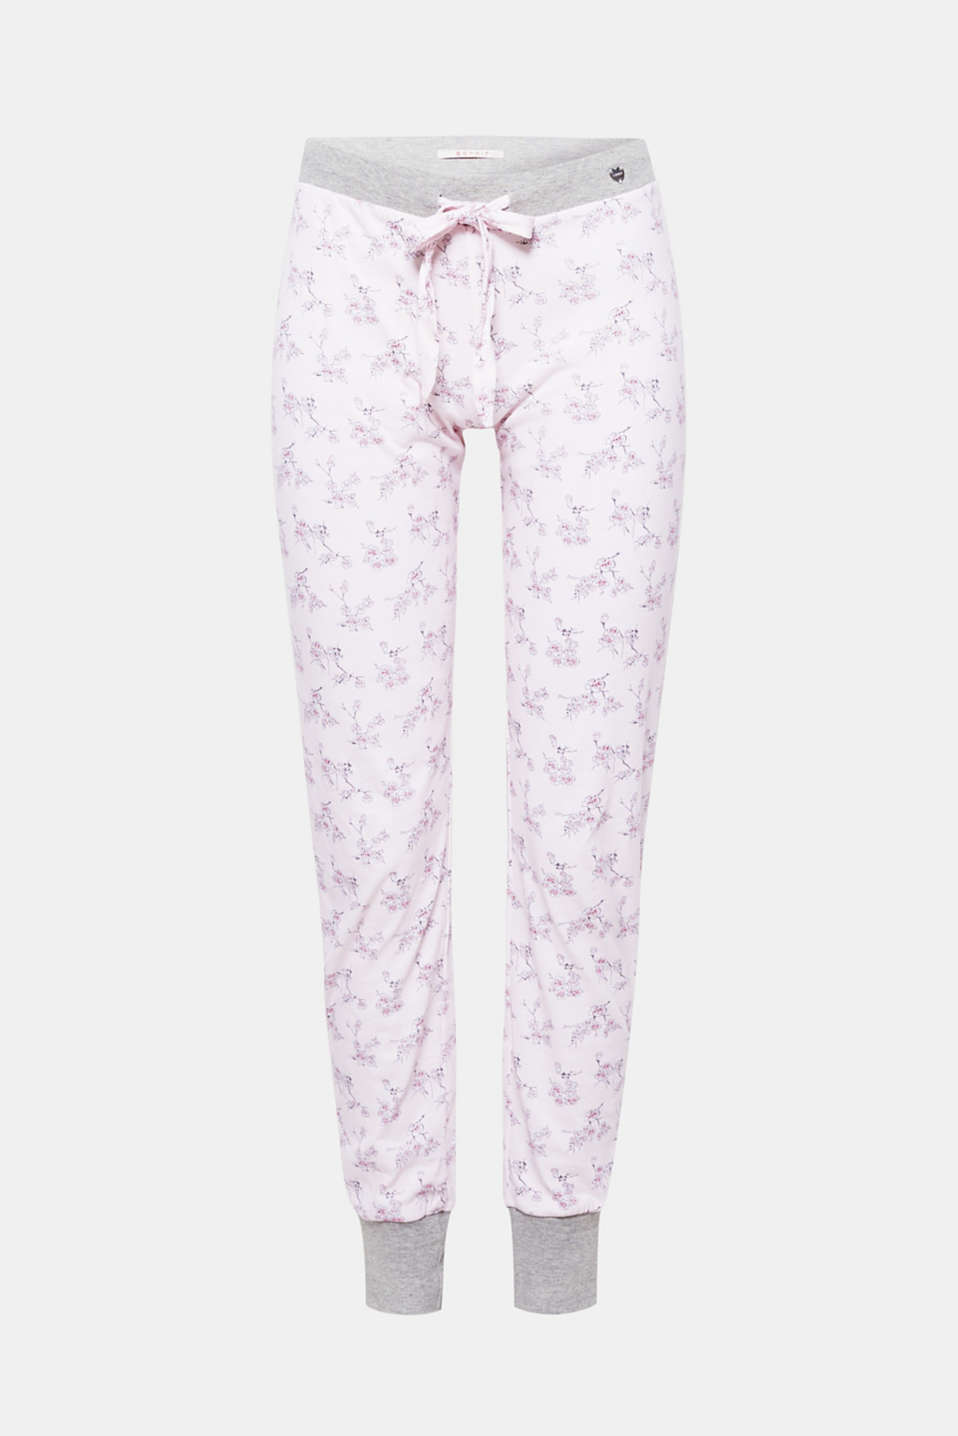 These jersey PJ bottoms with a Japanese cherry blossom print + elasticated waistband promise sweet dreams!